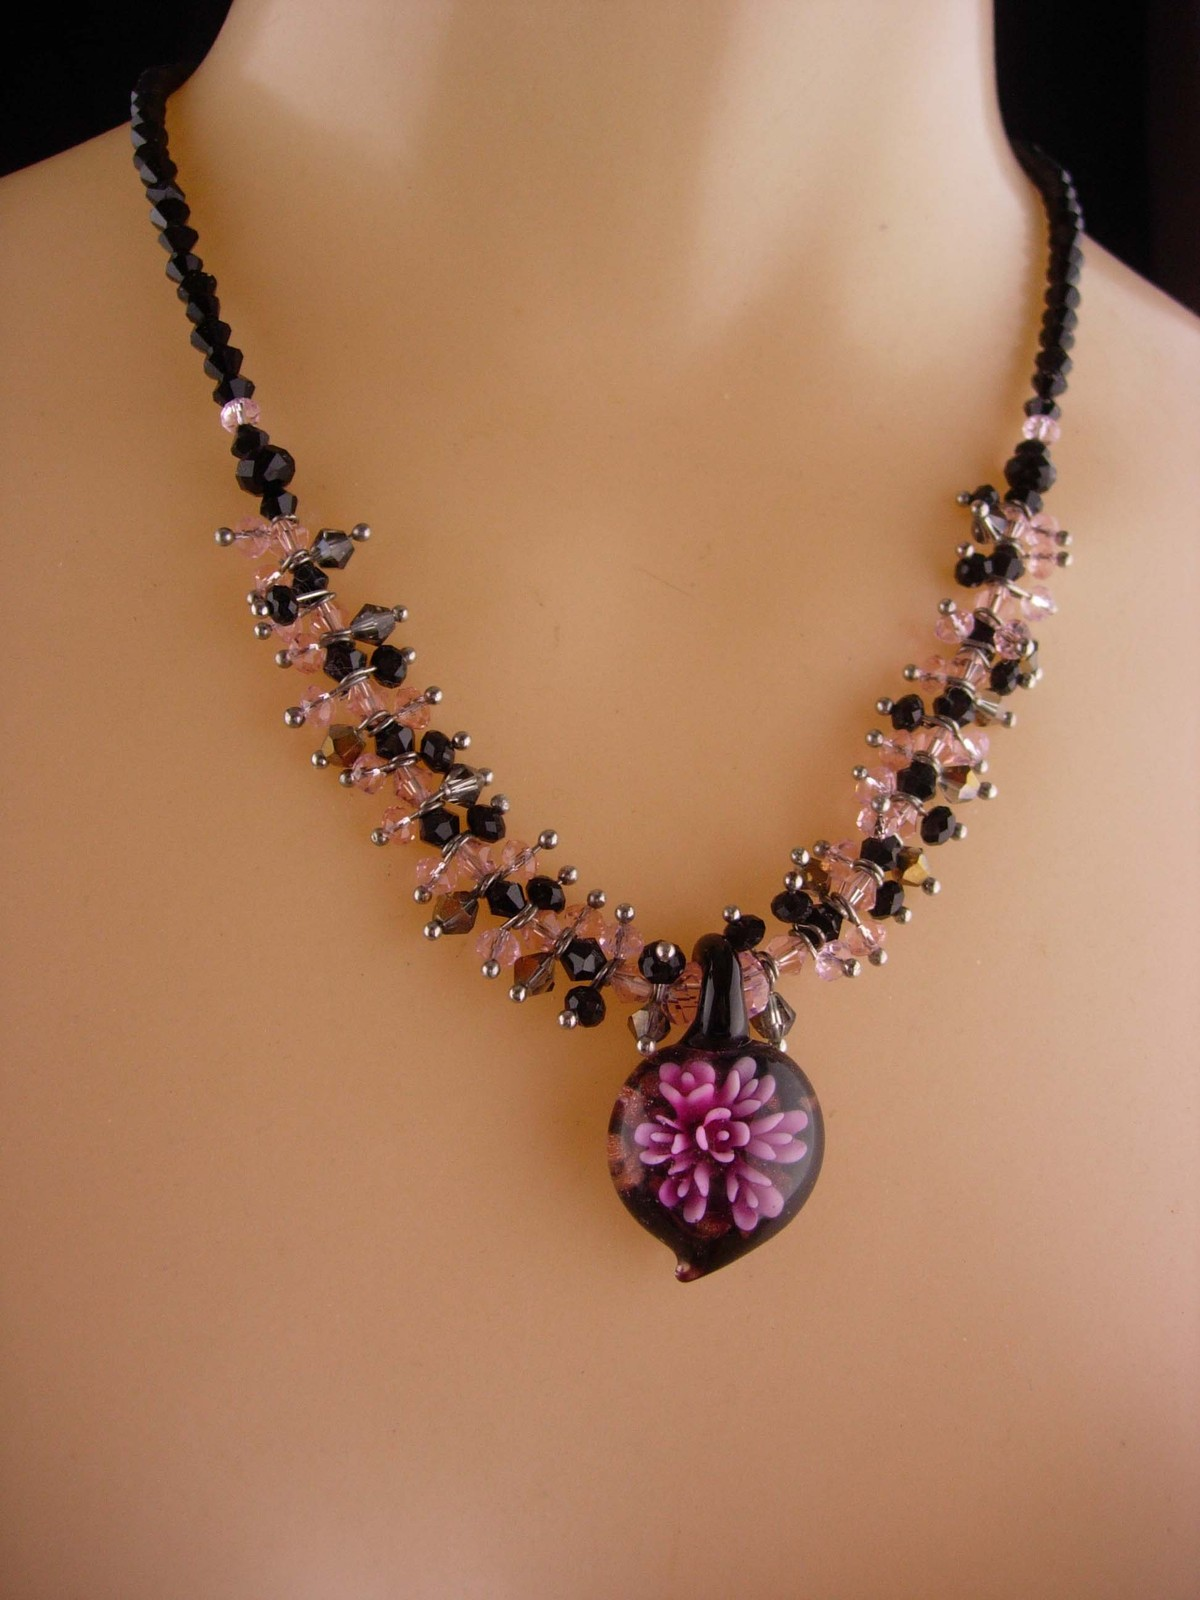 Glassflowernecklace2